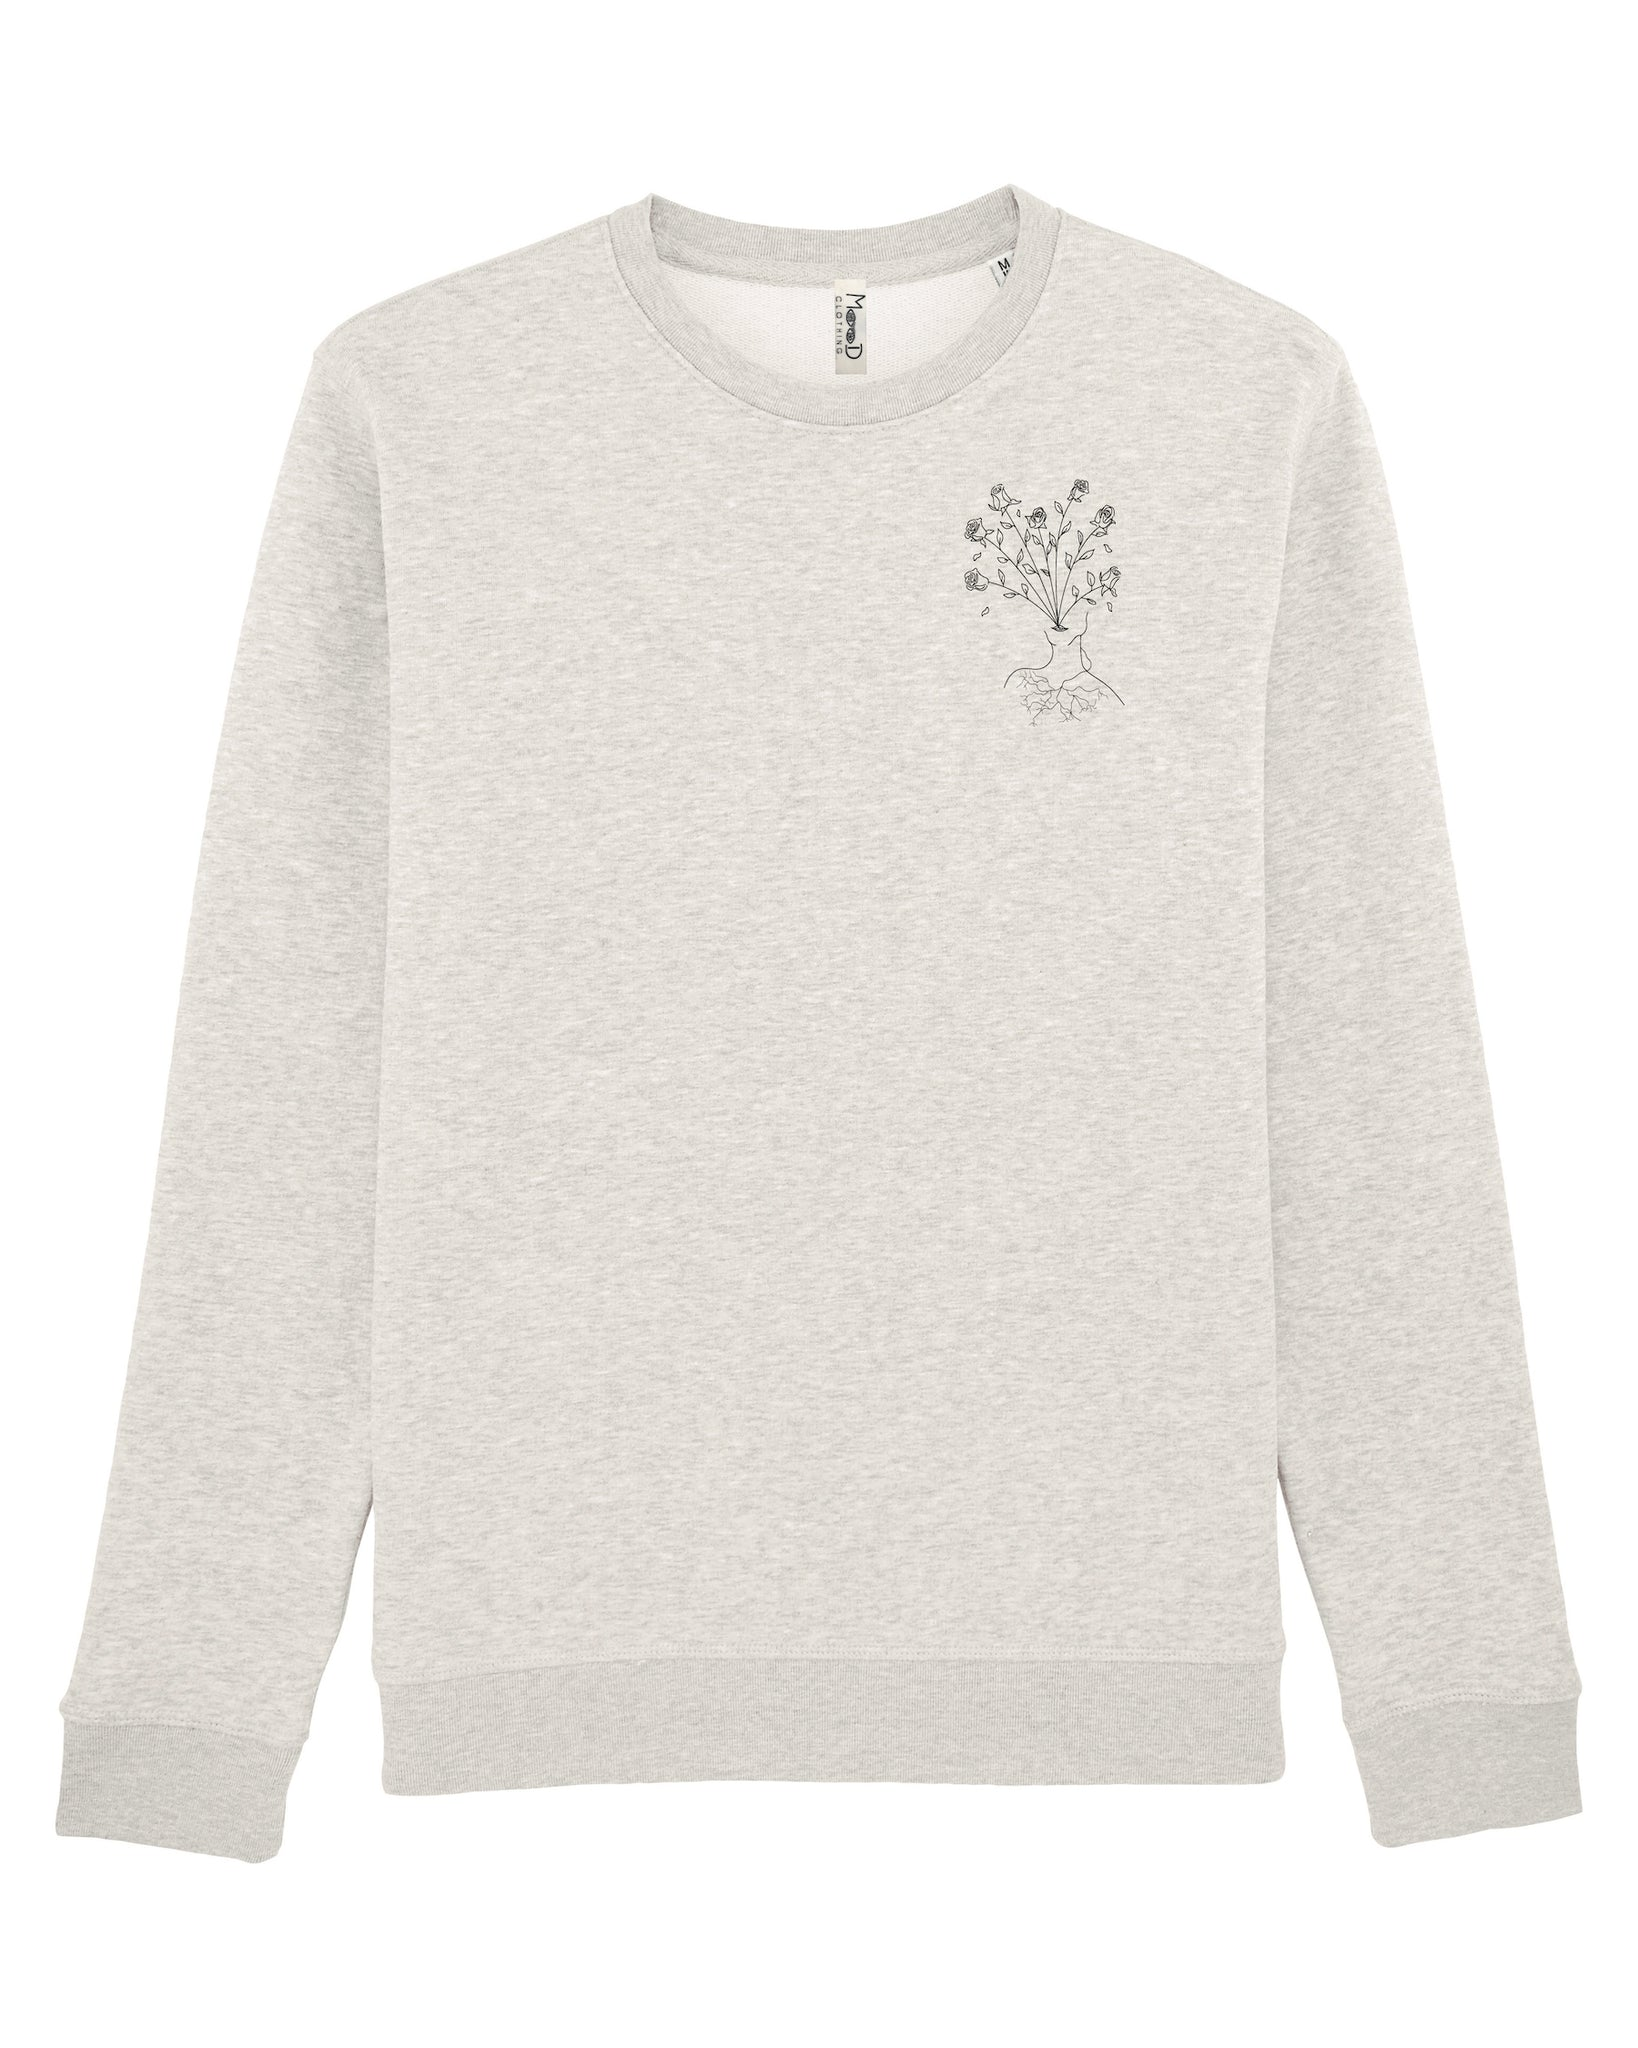 Sweatshirt gris crème - Body in bloom - Mood Clothing